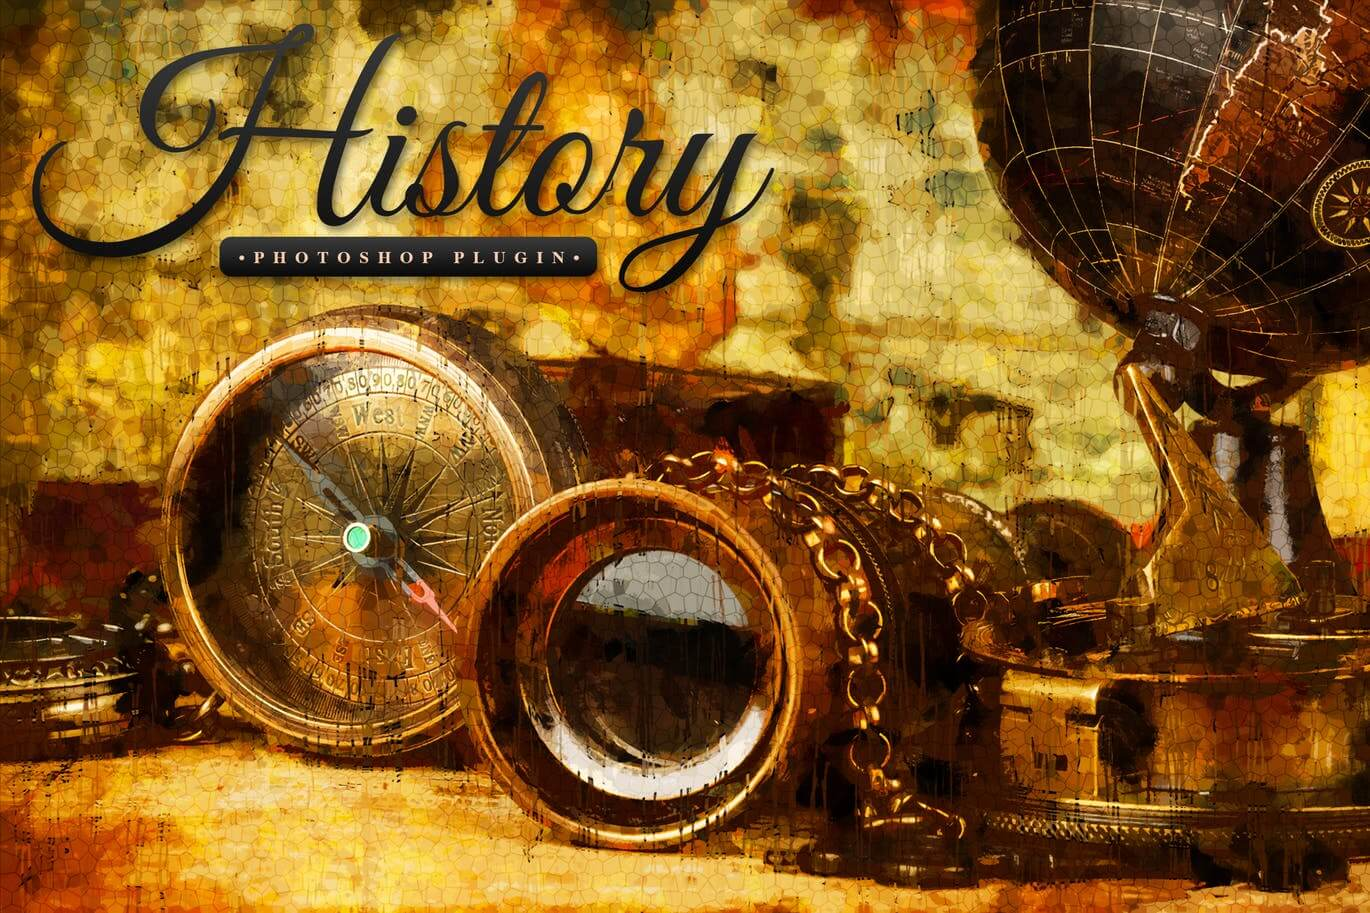 History - Realistic Painting Art Photoshop Plugin